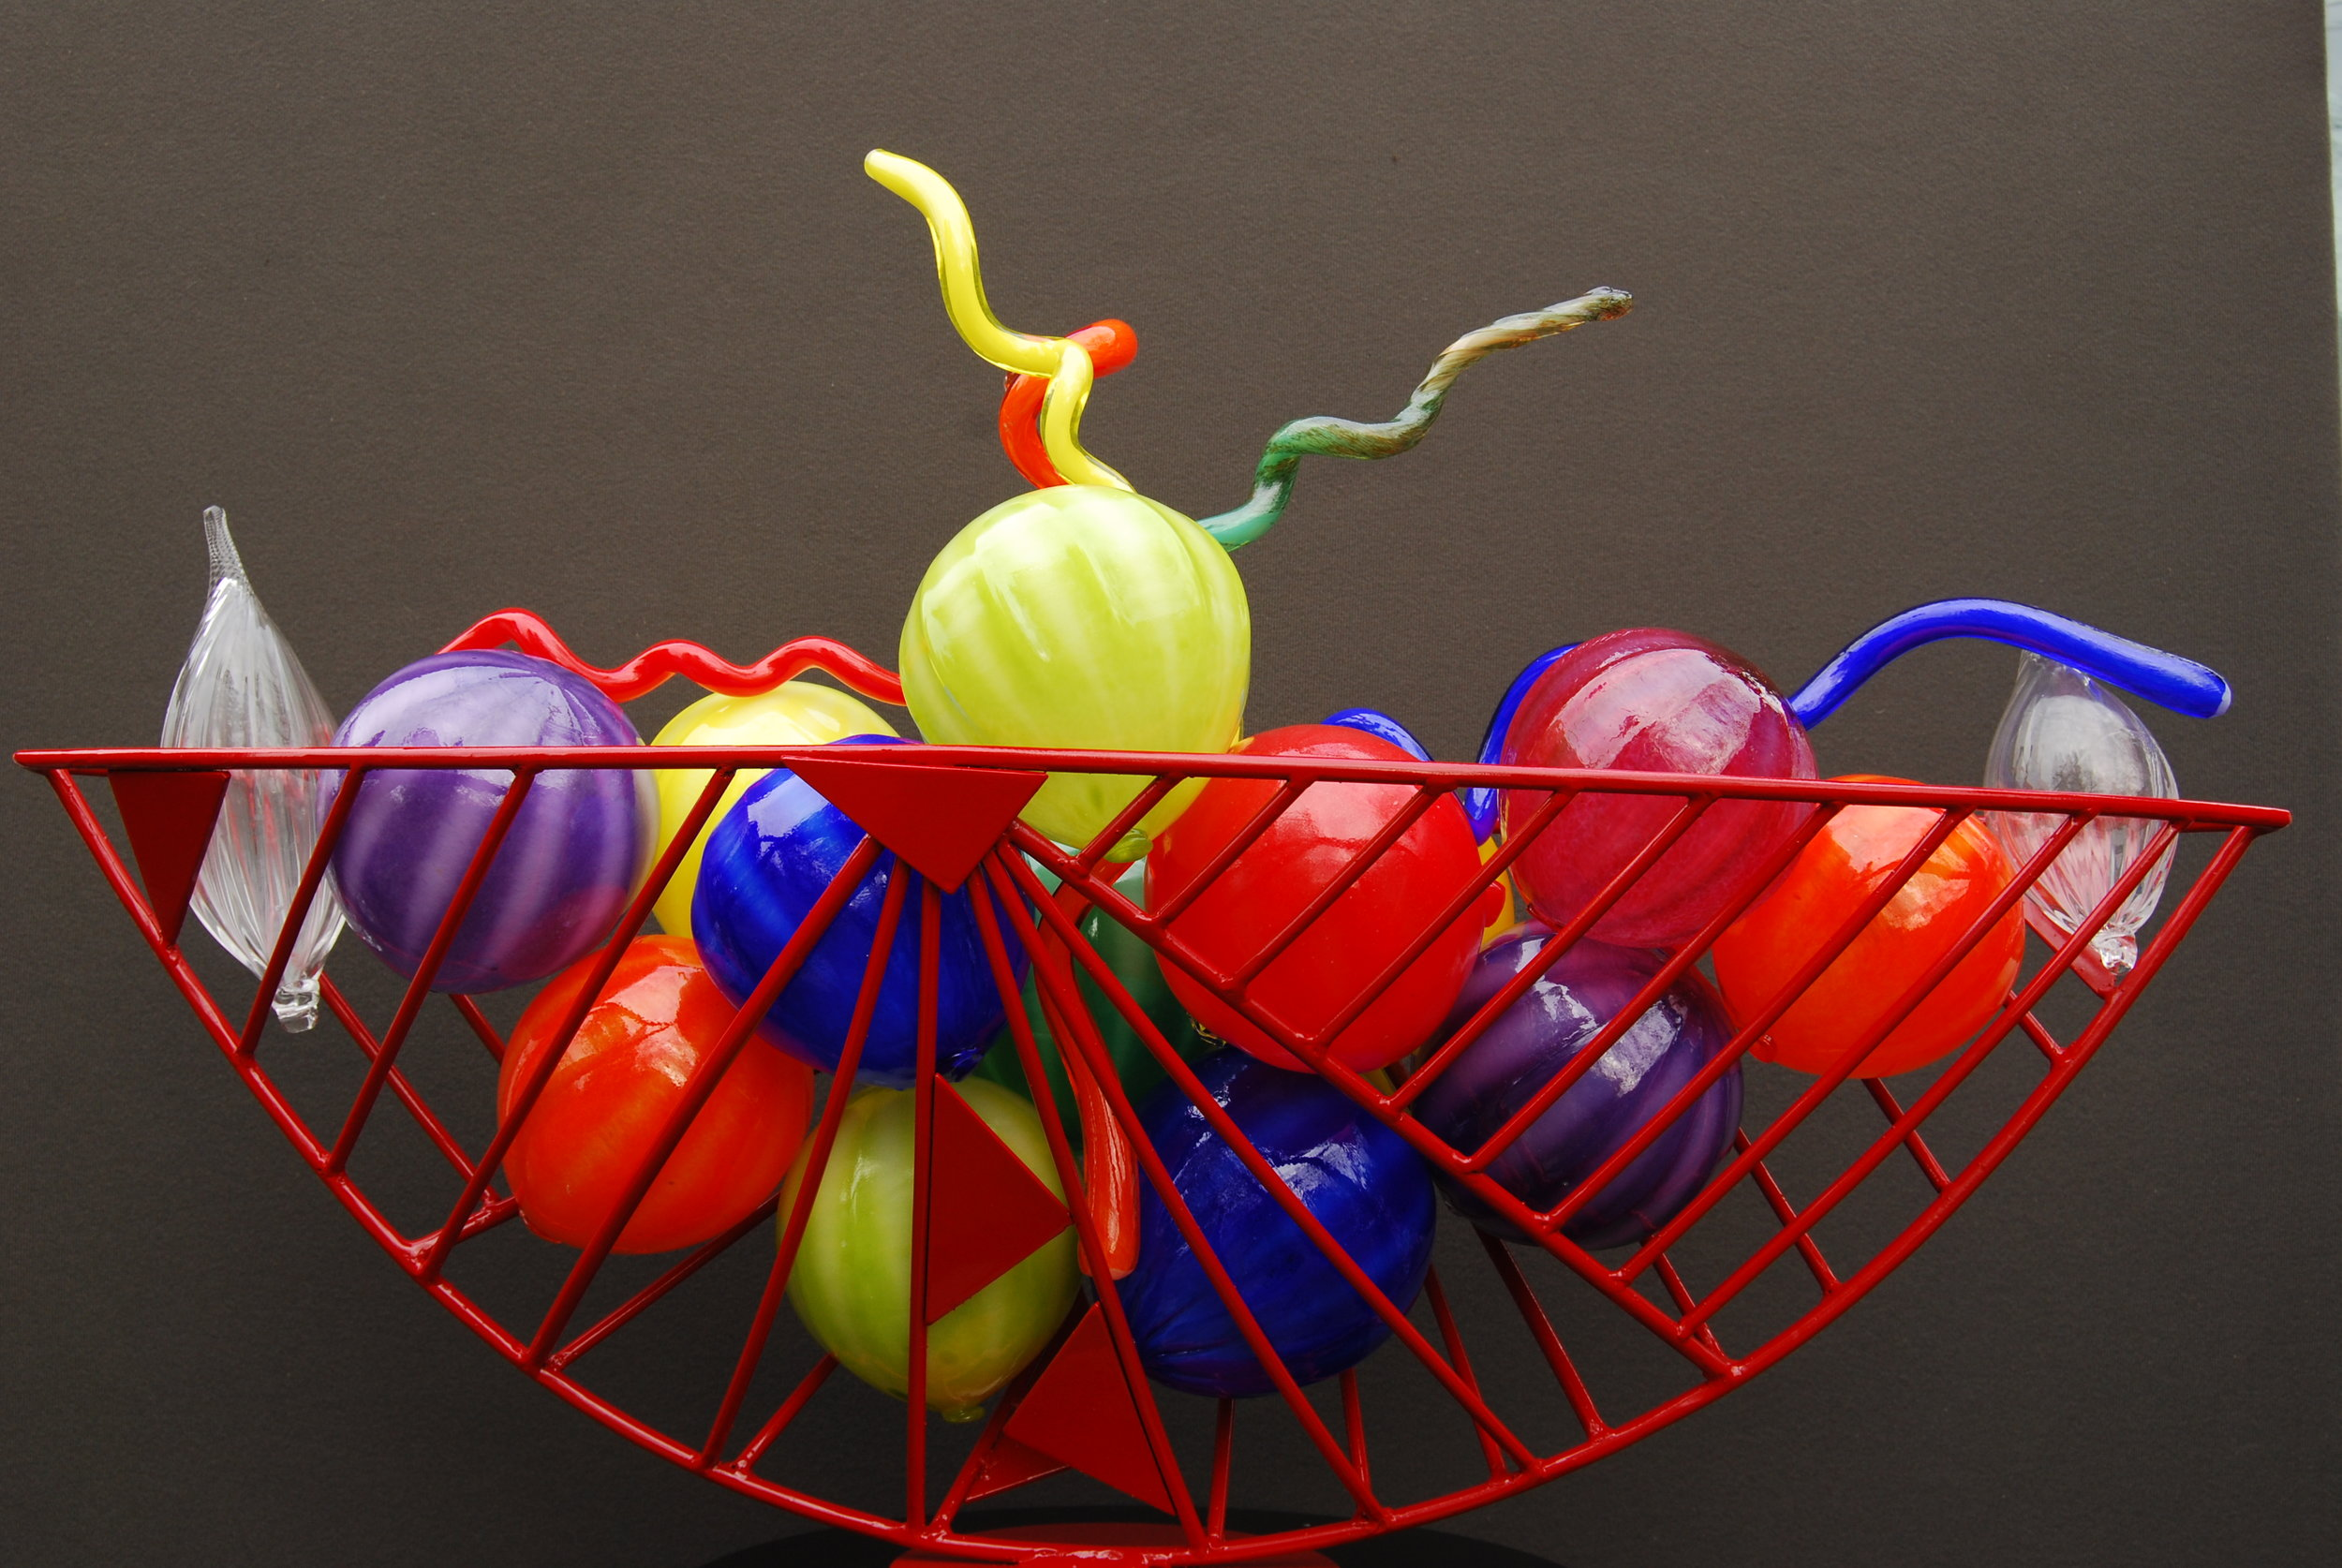 Copy of colorful glass sculpture